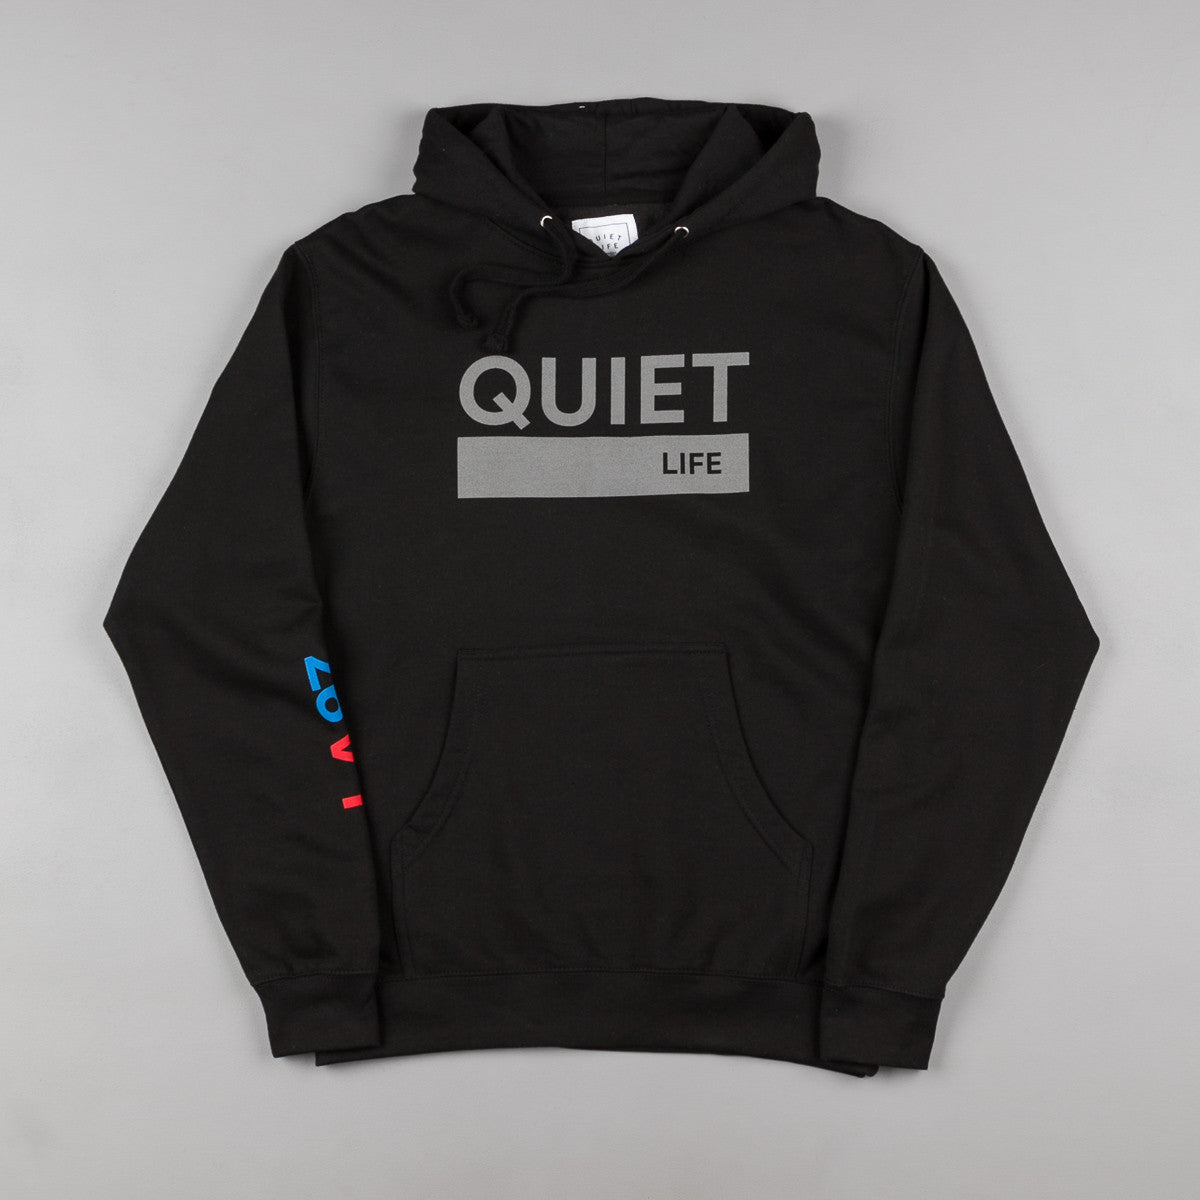 The Quiet Life League Hooded Sweatshirt - Black